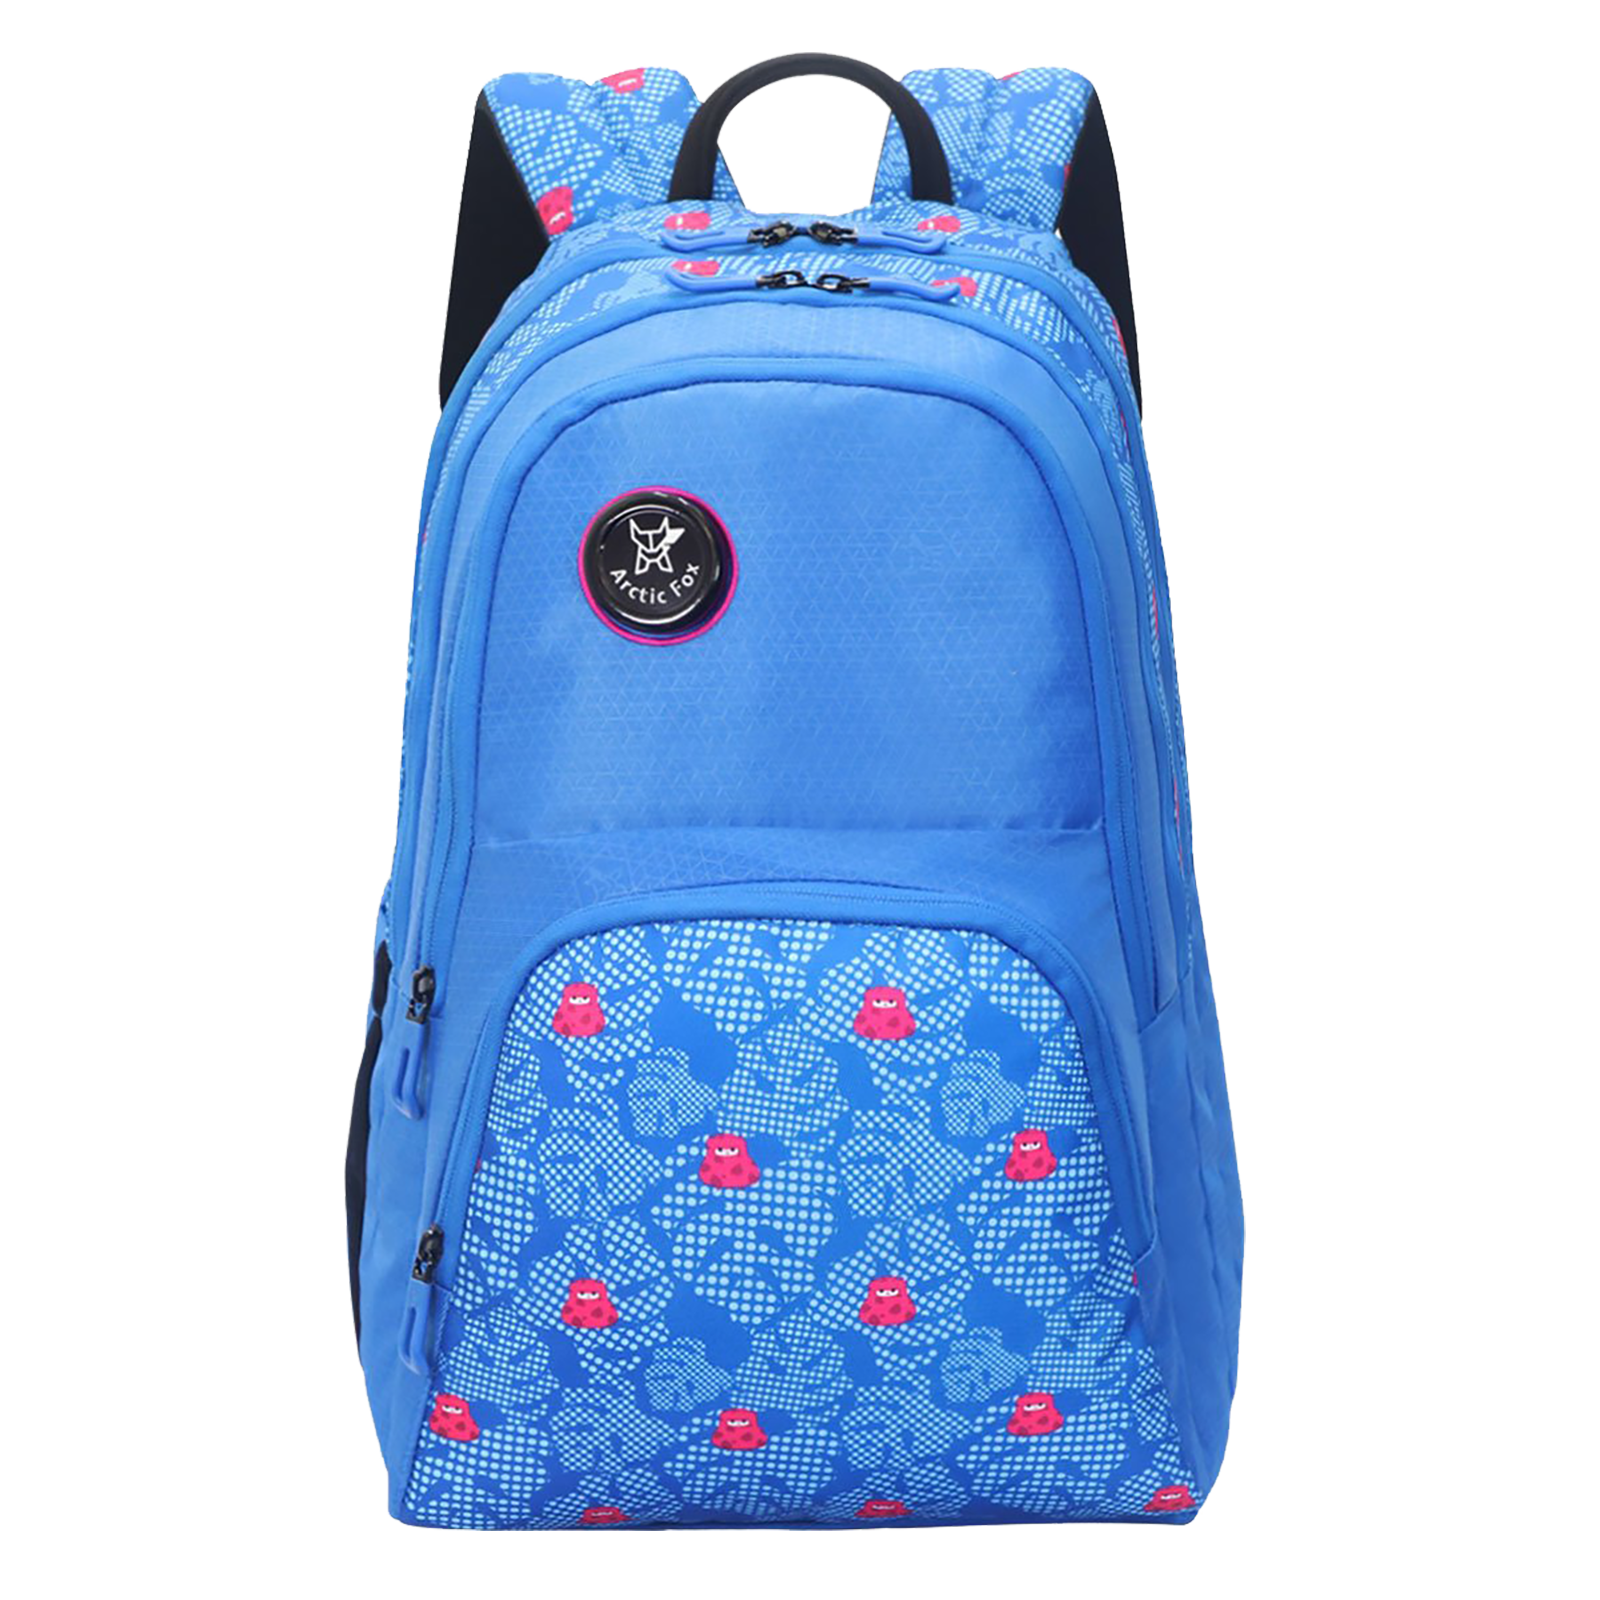 Arctic Fox Lama 31 Litres PU Coated Polyester Backpack (3 Spacious Compartments, FJUBPKDTBWZ074031, Directorie Blue)_1